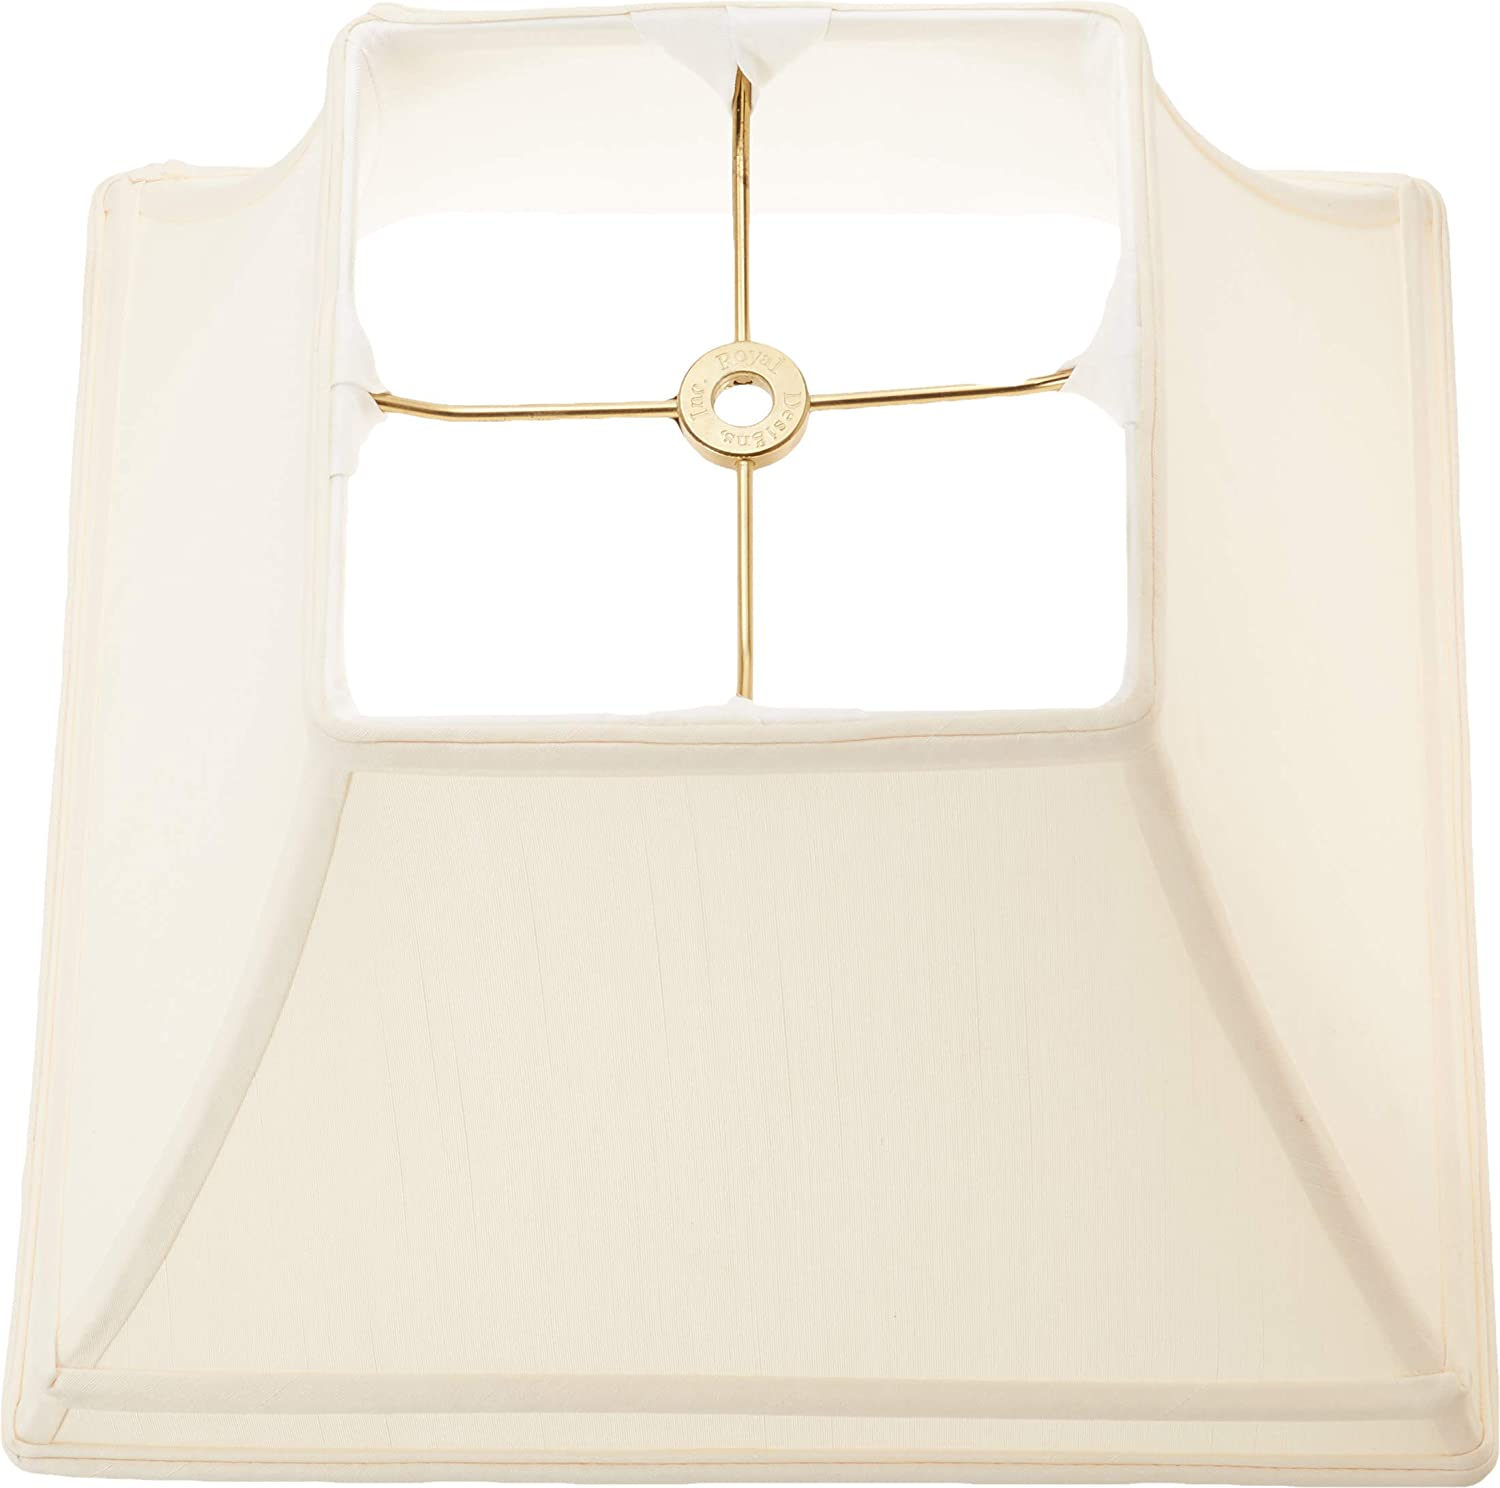 Royal Designs BS-740-12BLK Square Bell Gallery Basic Lamp Shade Black Inc. 6 x 12 x 9